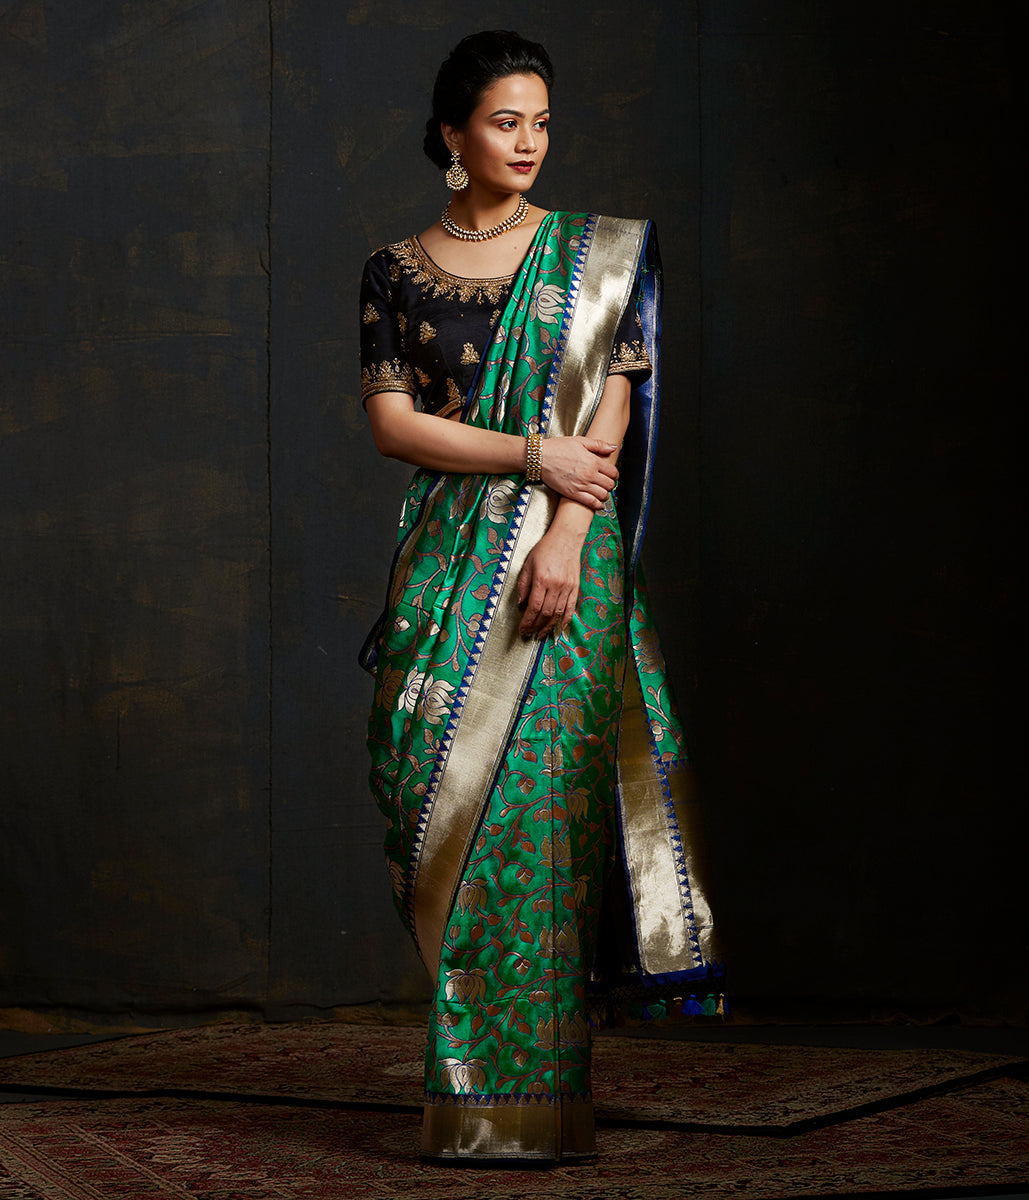 Emerald Green brocade jangla with lotus flower motifs in zari